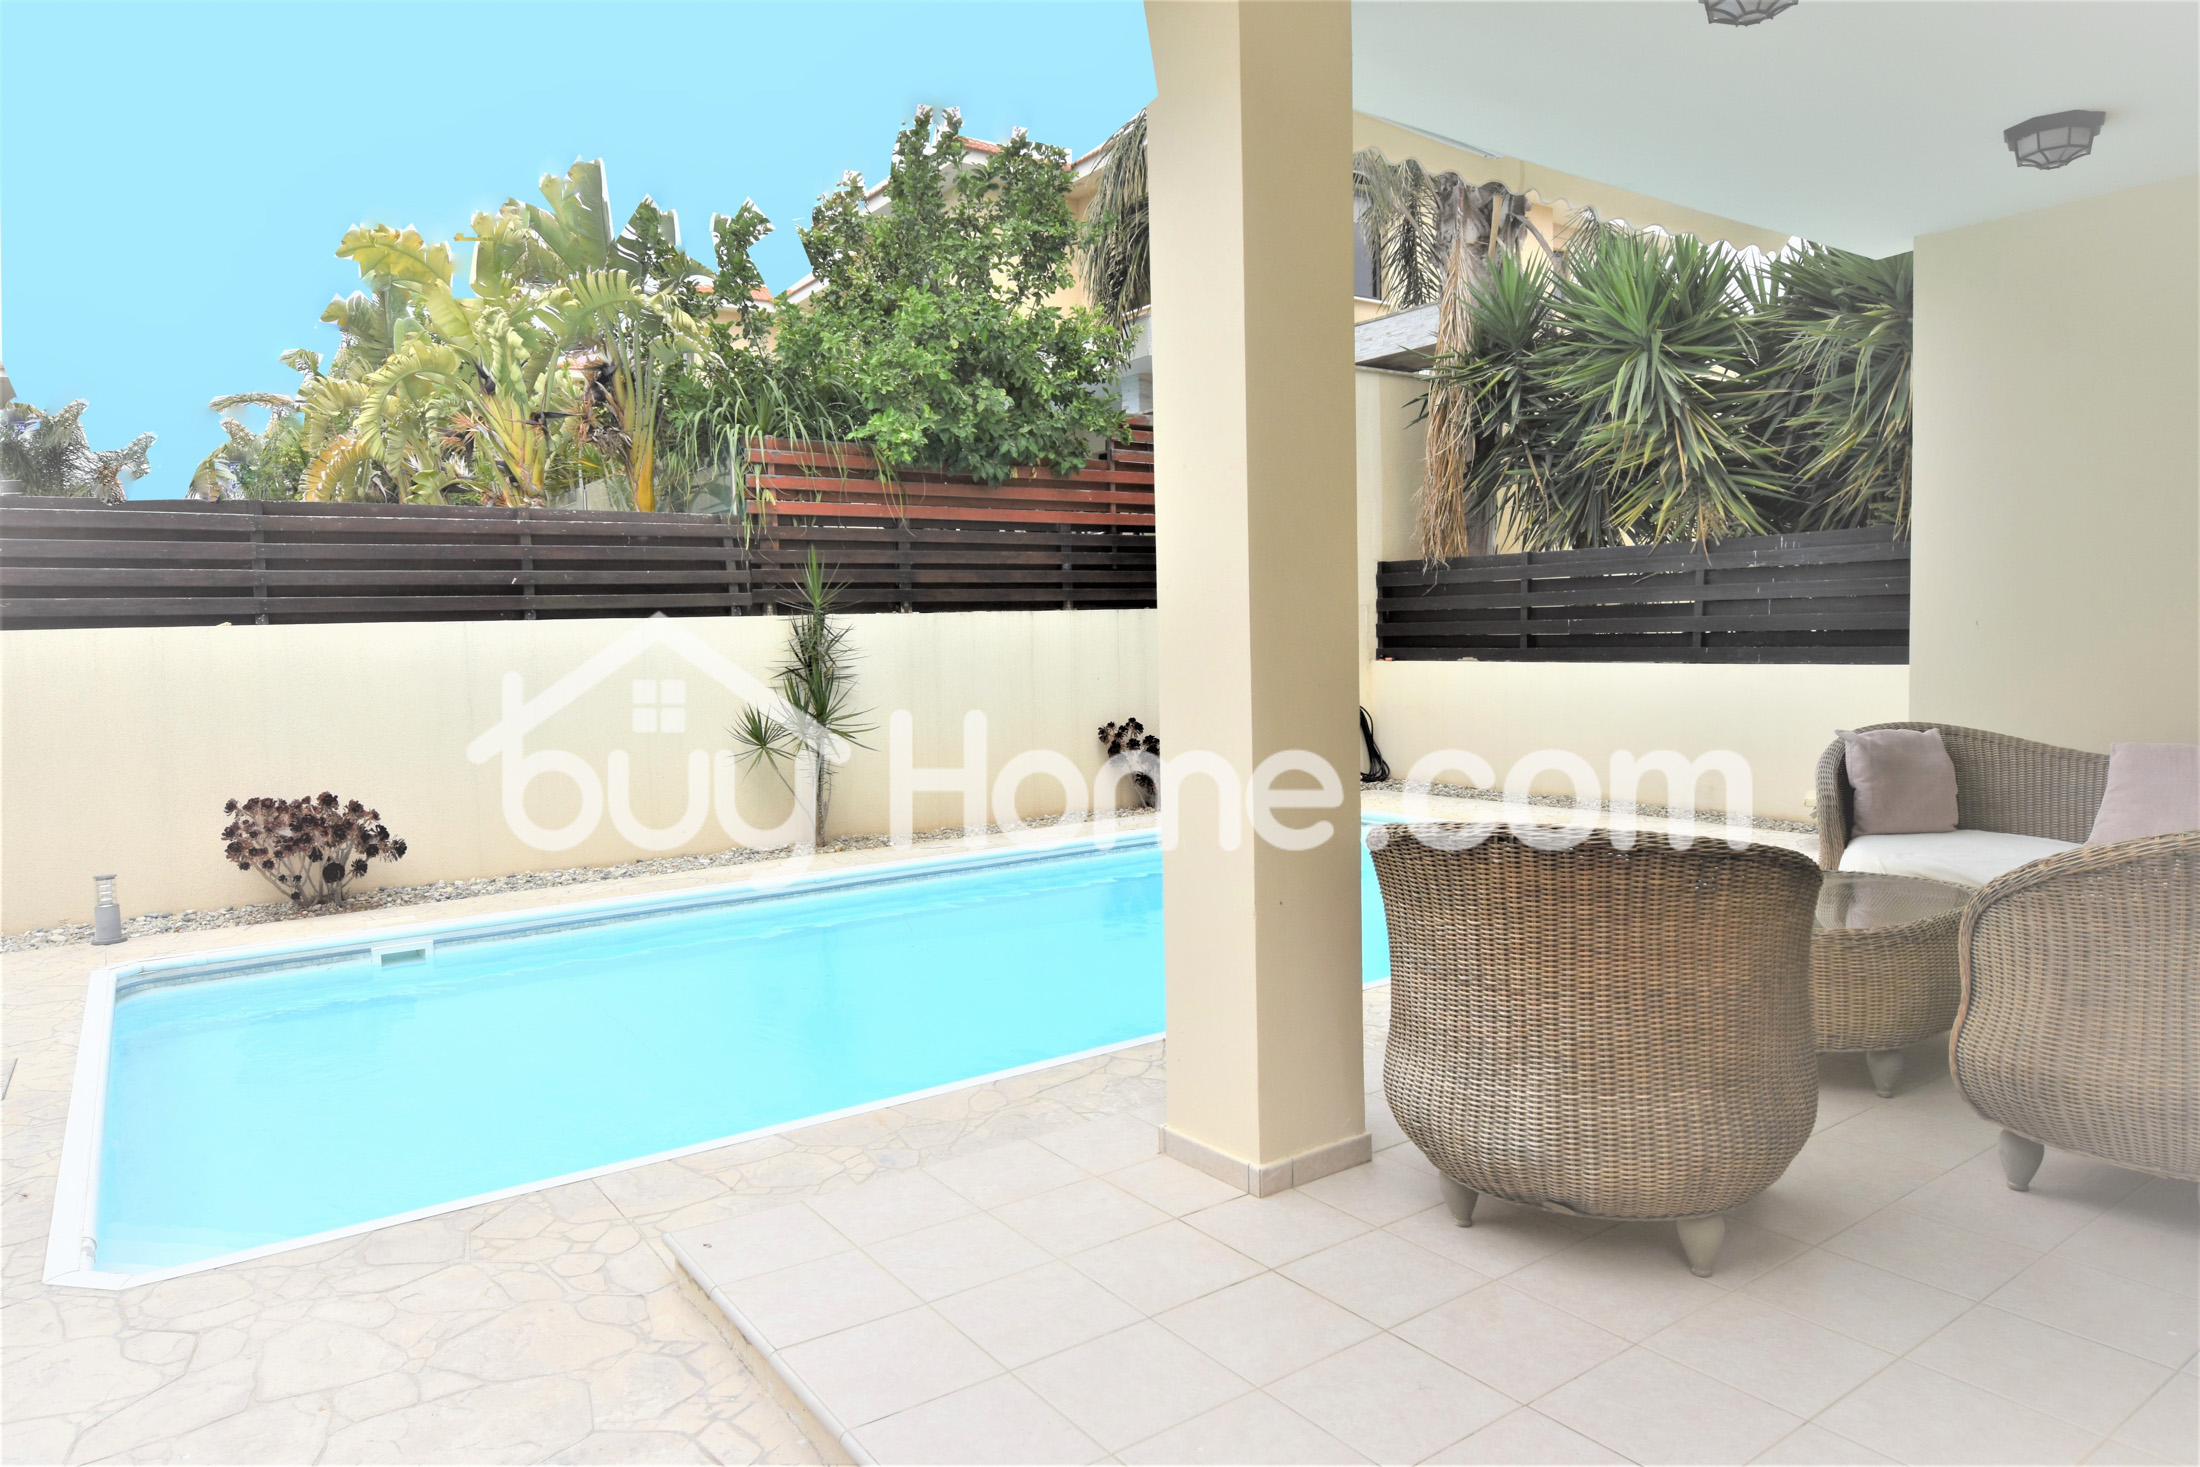 3 Bedroom House With A Pool | BuyHome